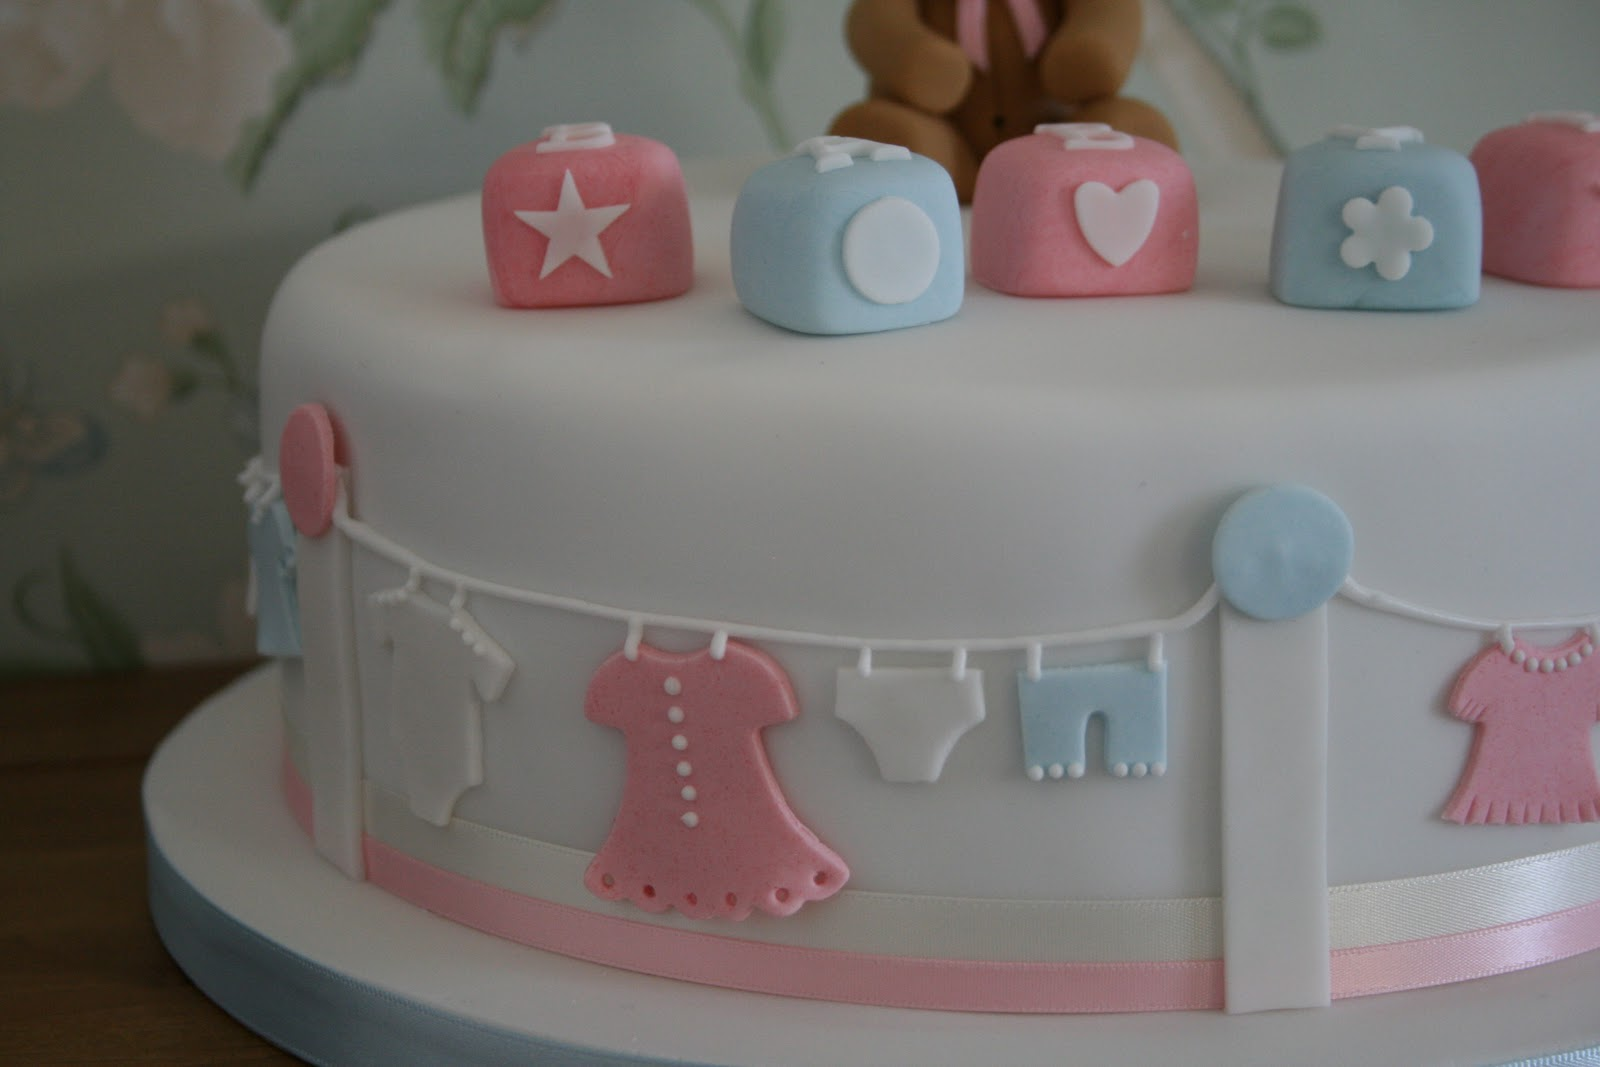 Cake Design Baby Shower Girl : lauralovescakes...: Baby Shower Cake